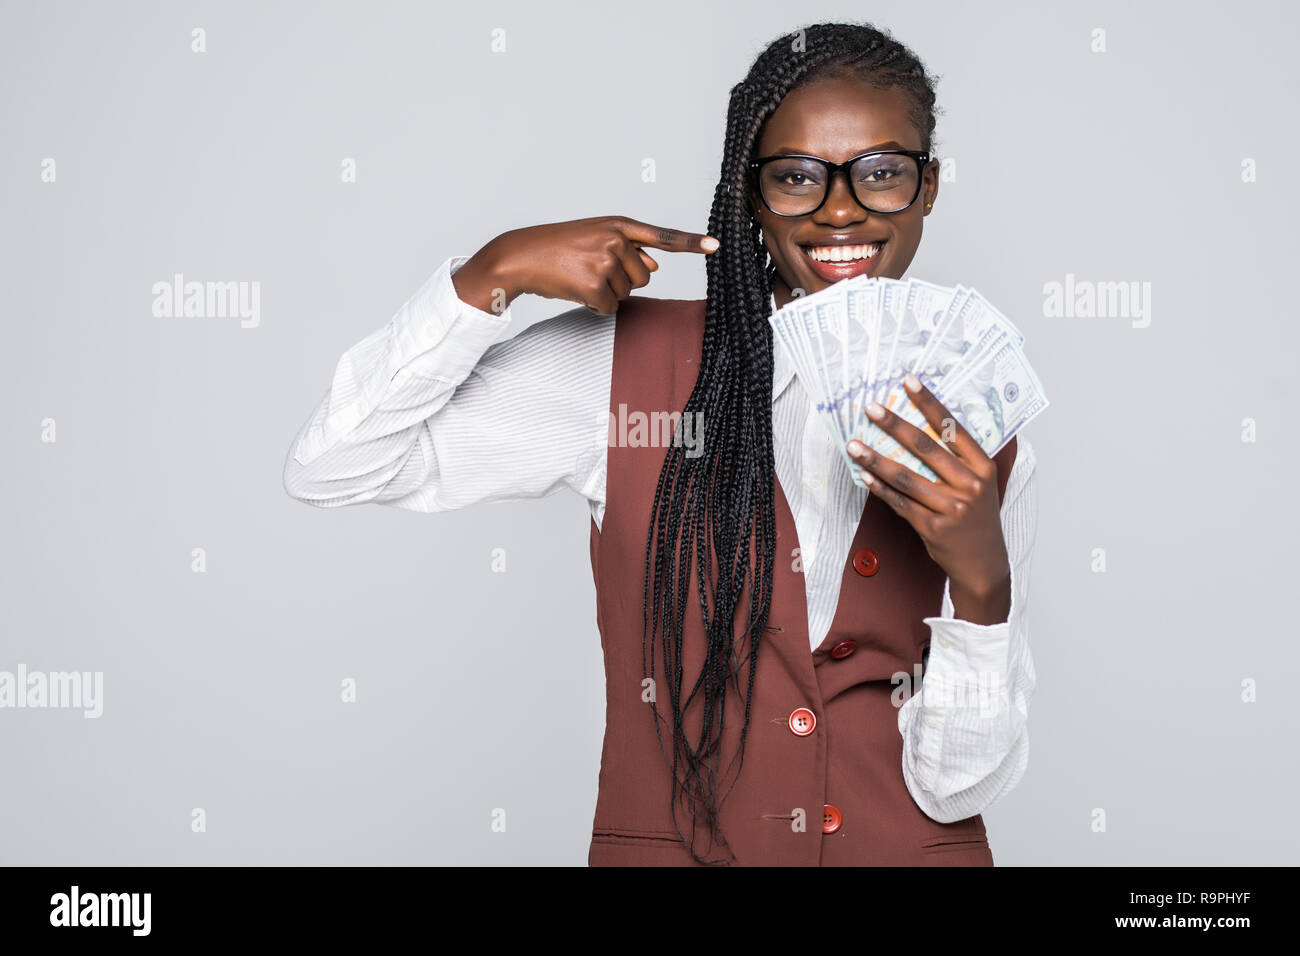 Portrait of excited woman with afro hairstyle pointing finger on fan of money dollar bills isolated over gray background - Stock Image